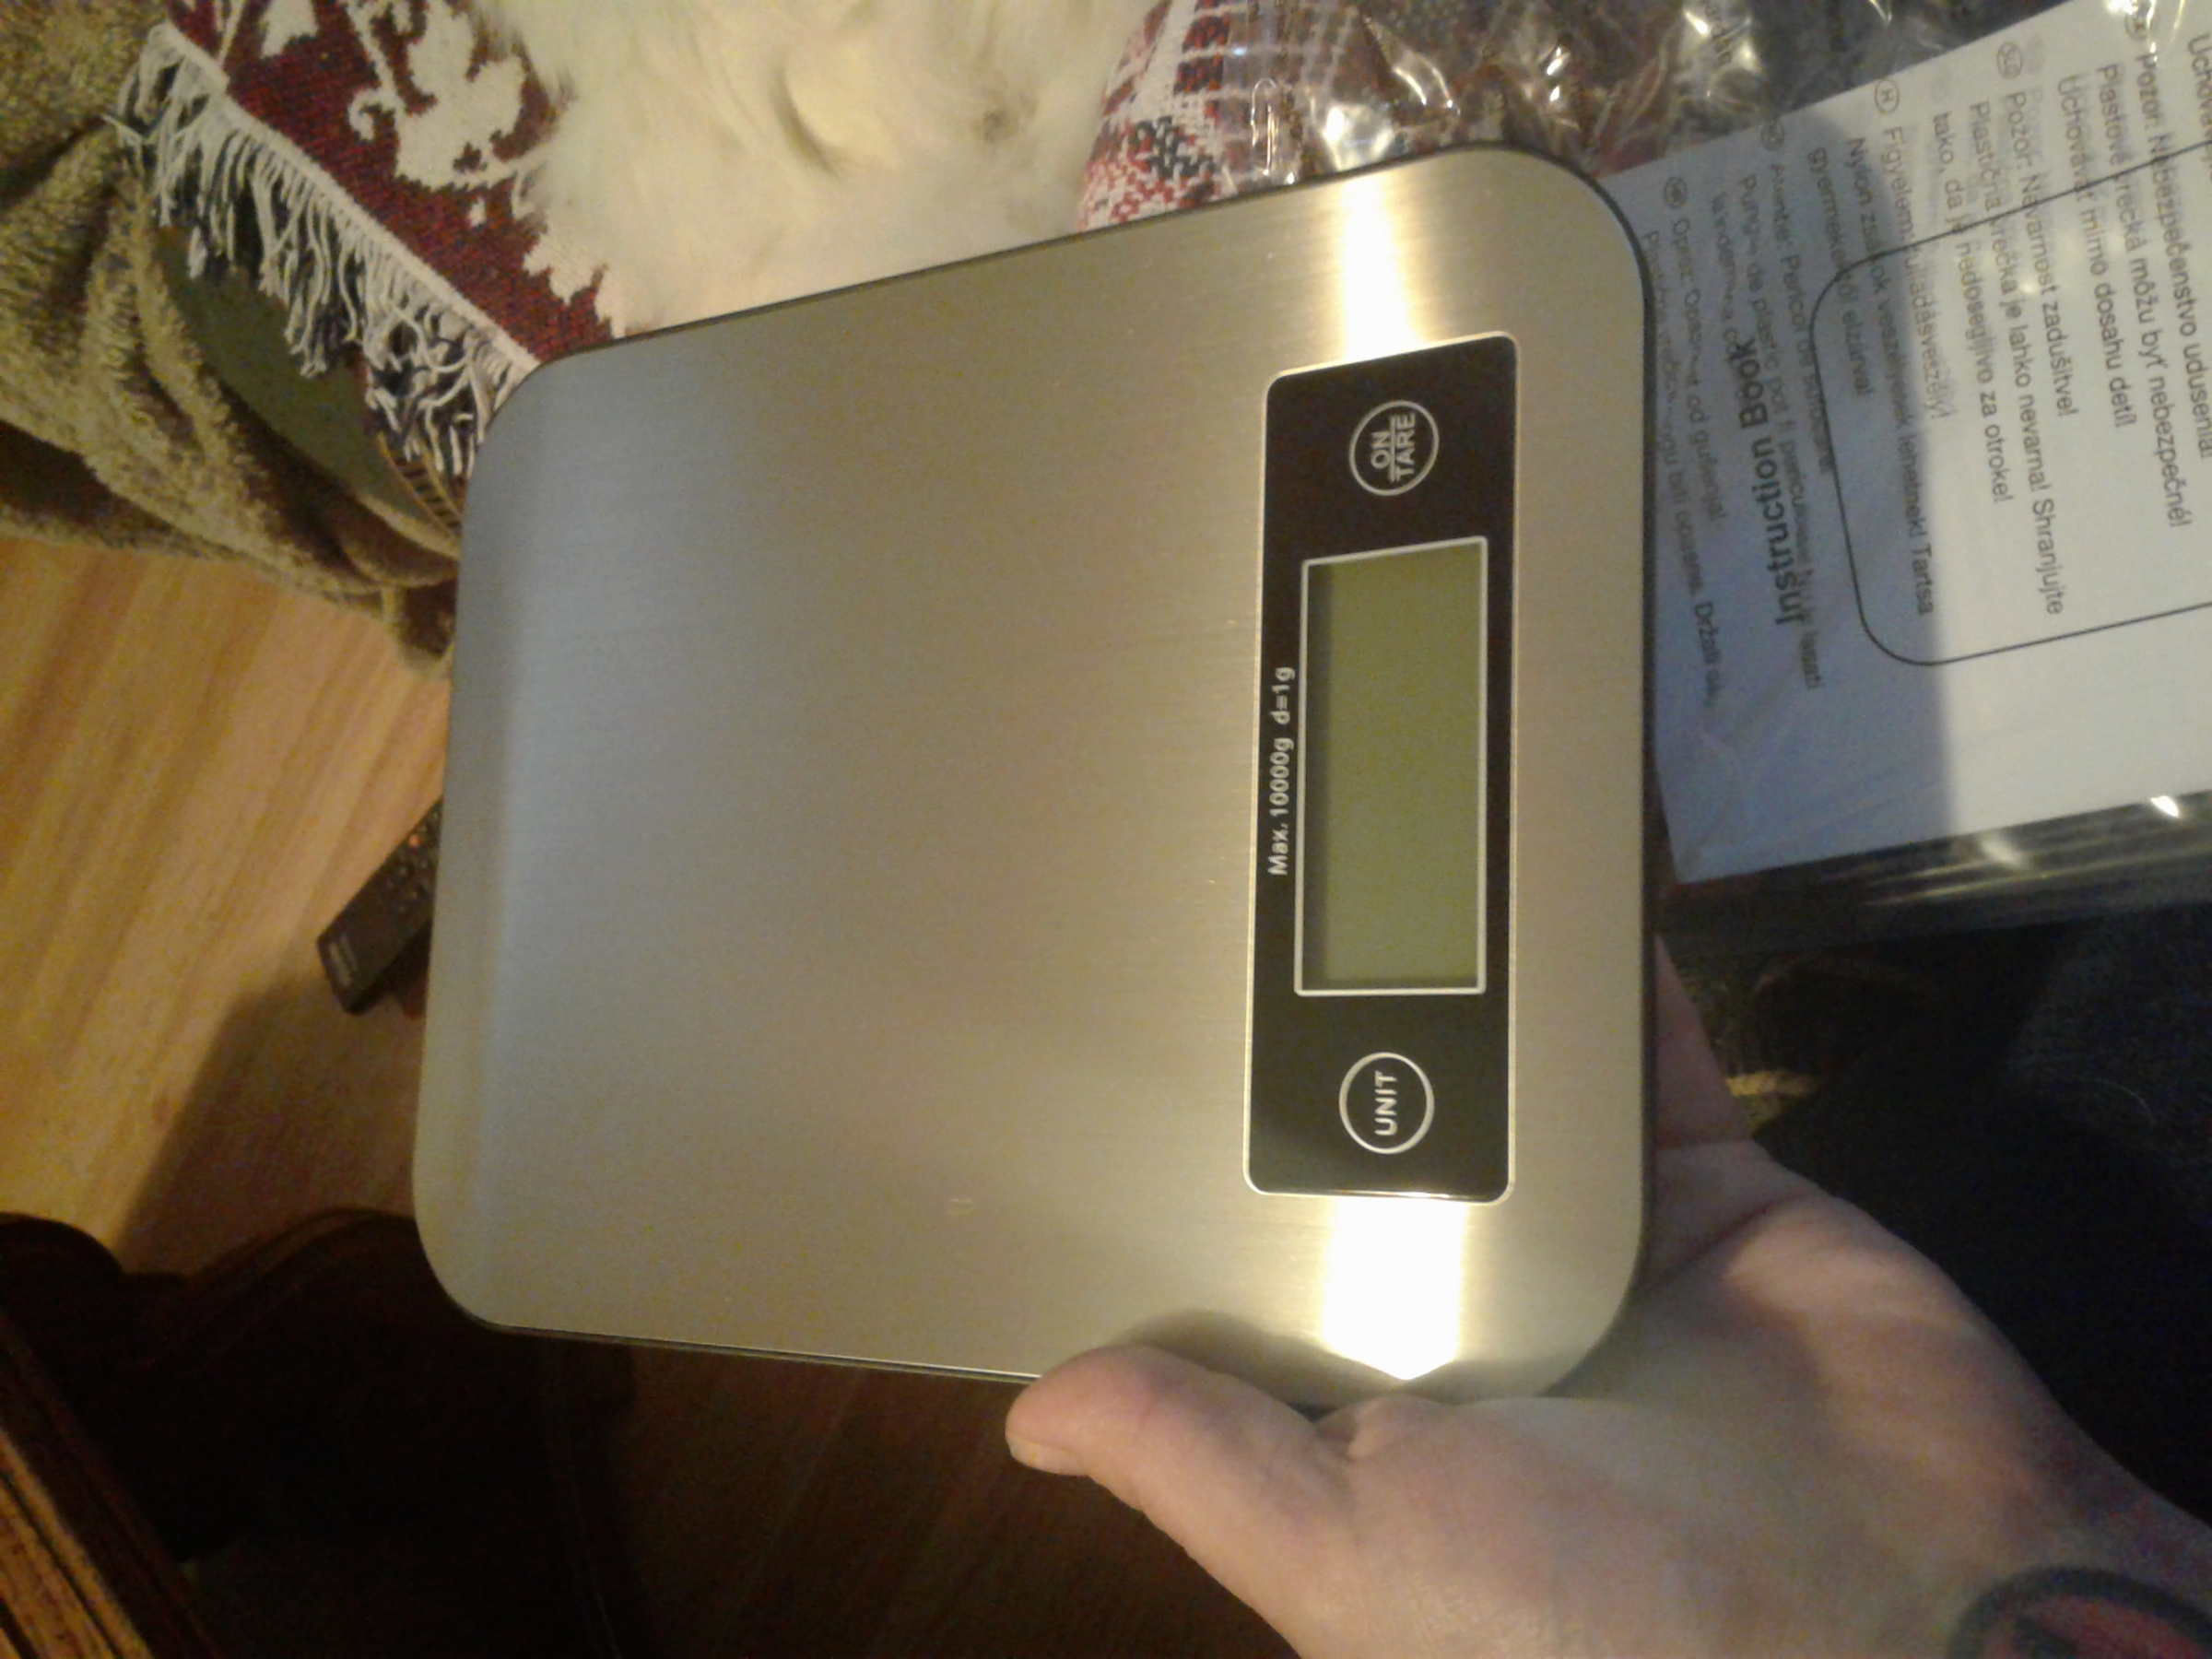 This is a really nice scale. Also it is very accurate. Its comes with batteries amd a nice case to keep it clean and new.its a very nice looking scale. I really enjoy iy.